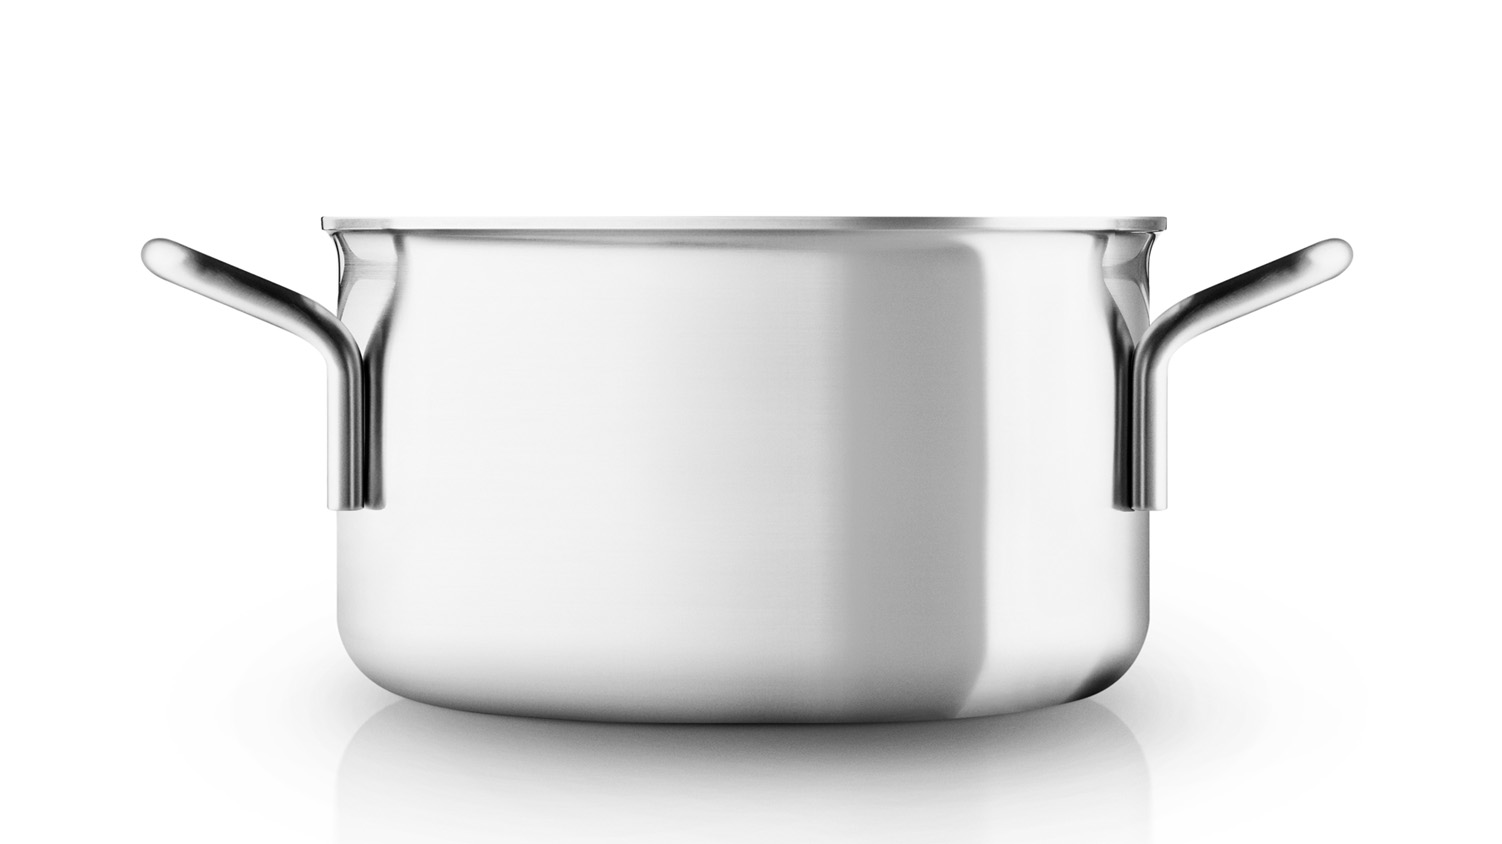 <p>All the bases and sides of the cookware in the Multi series feature a three-layer sandwich construction consisting of stainless steel with an aluminium core. This combination provides extremely good heat distribution and is particularly good for boiling and frying.</p> <p><strong>The Multi series is good for: Casseroles, rice pudding, sauces, pasta, potatoes and vegetables.</strong></p>